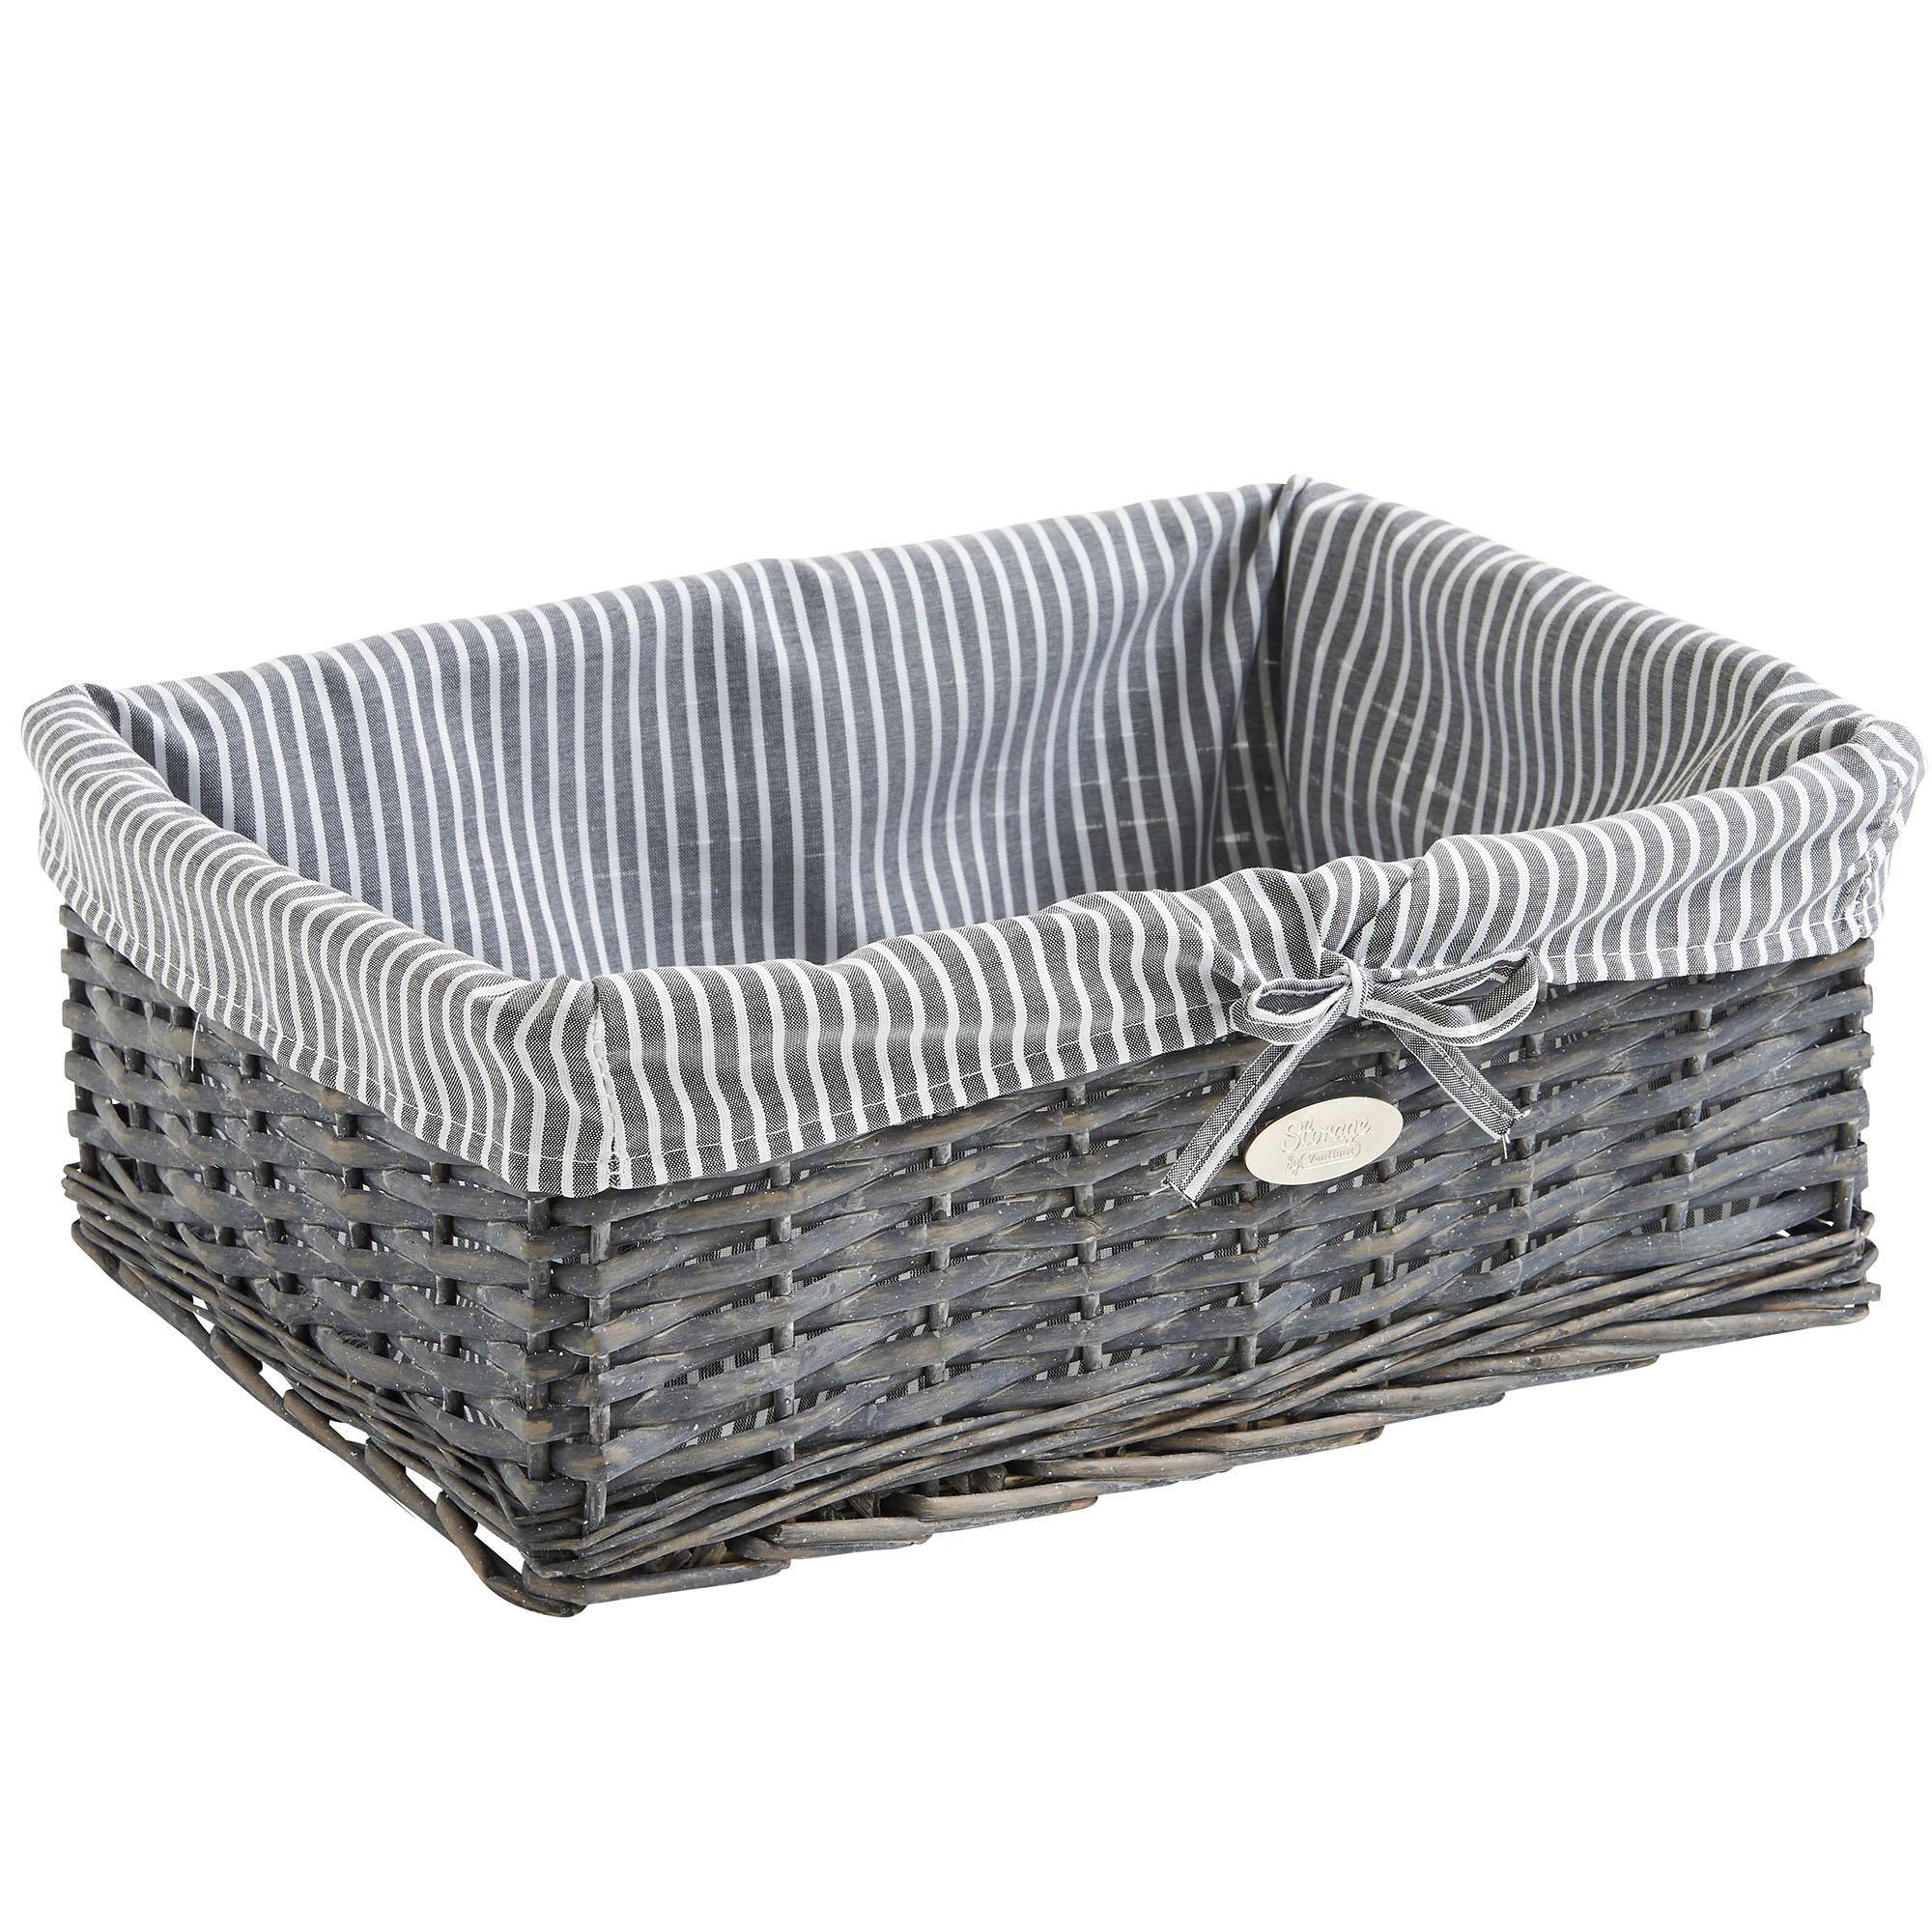 Superbe Sentinel VonHaus Set Of 3 Grey Wicker Storage Baskets